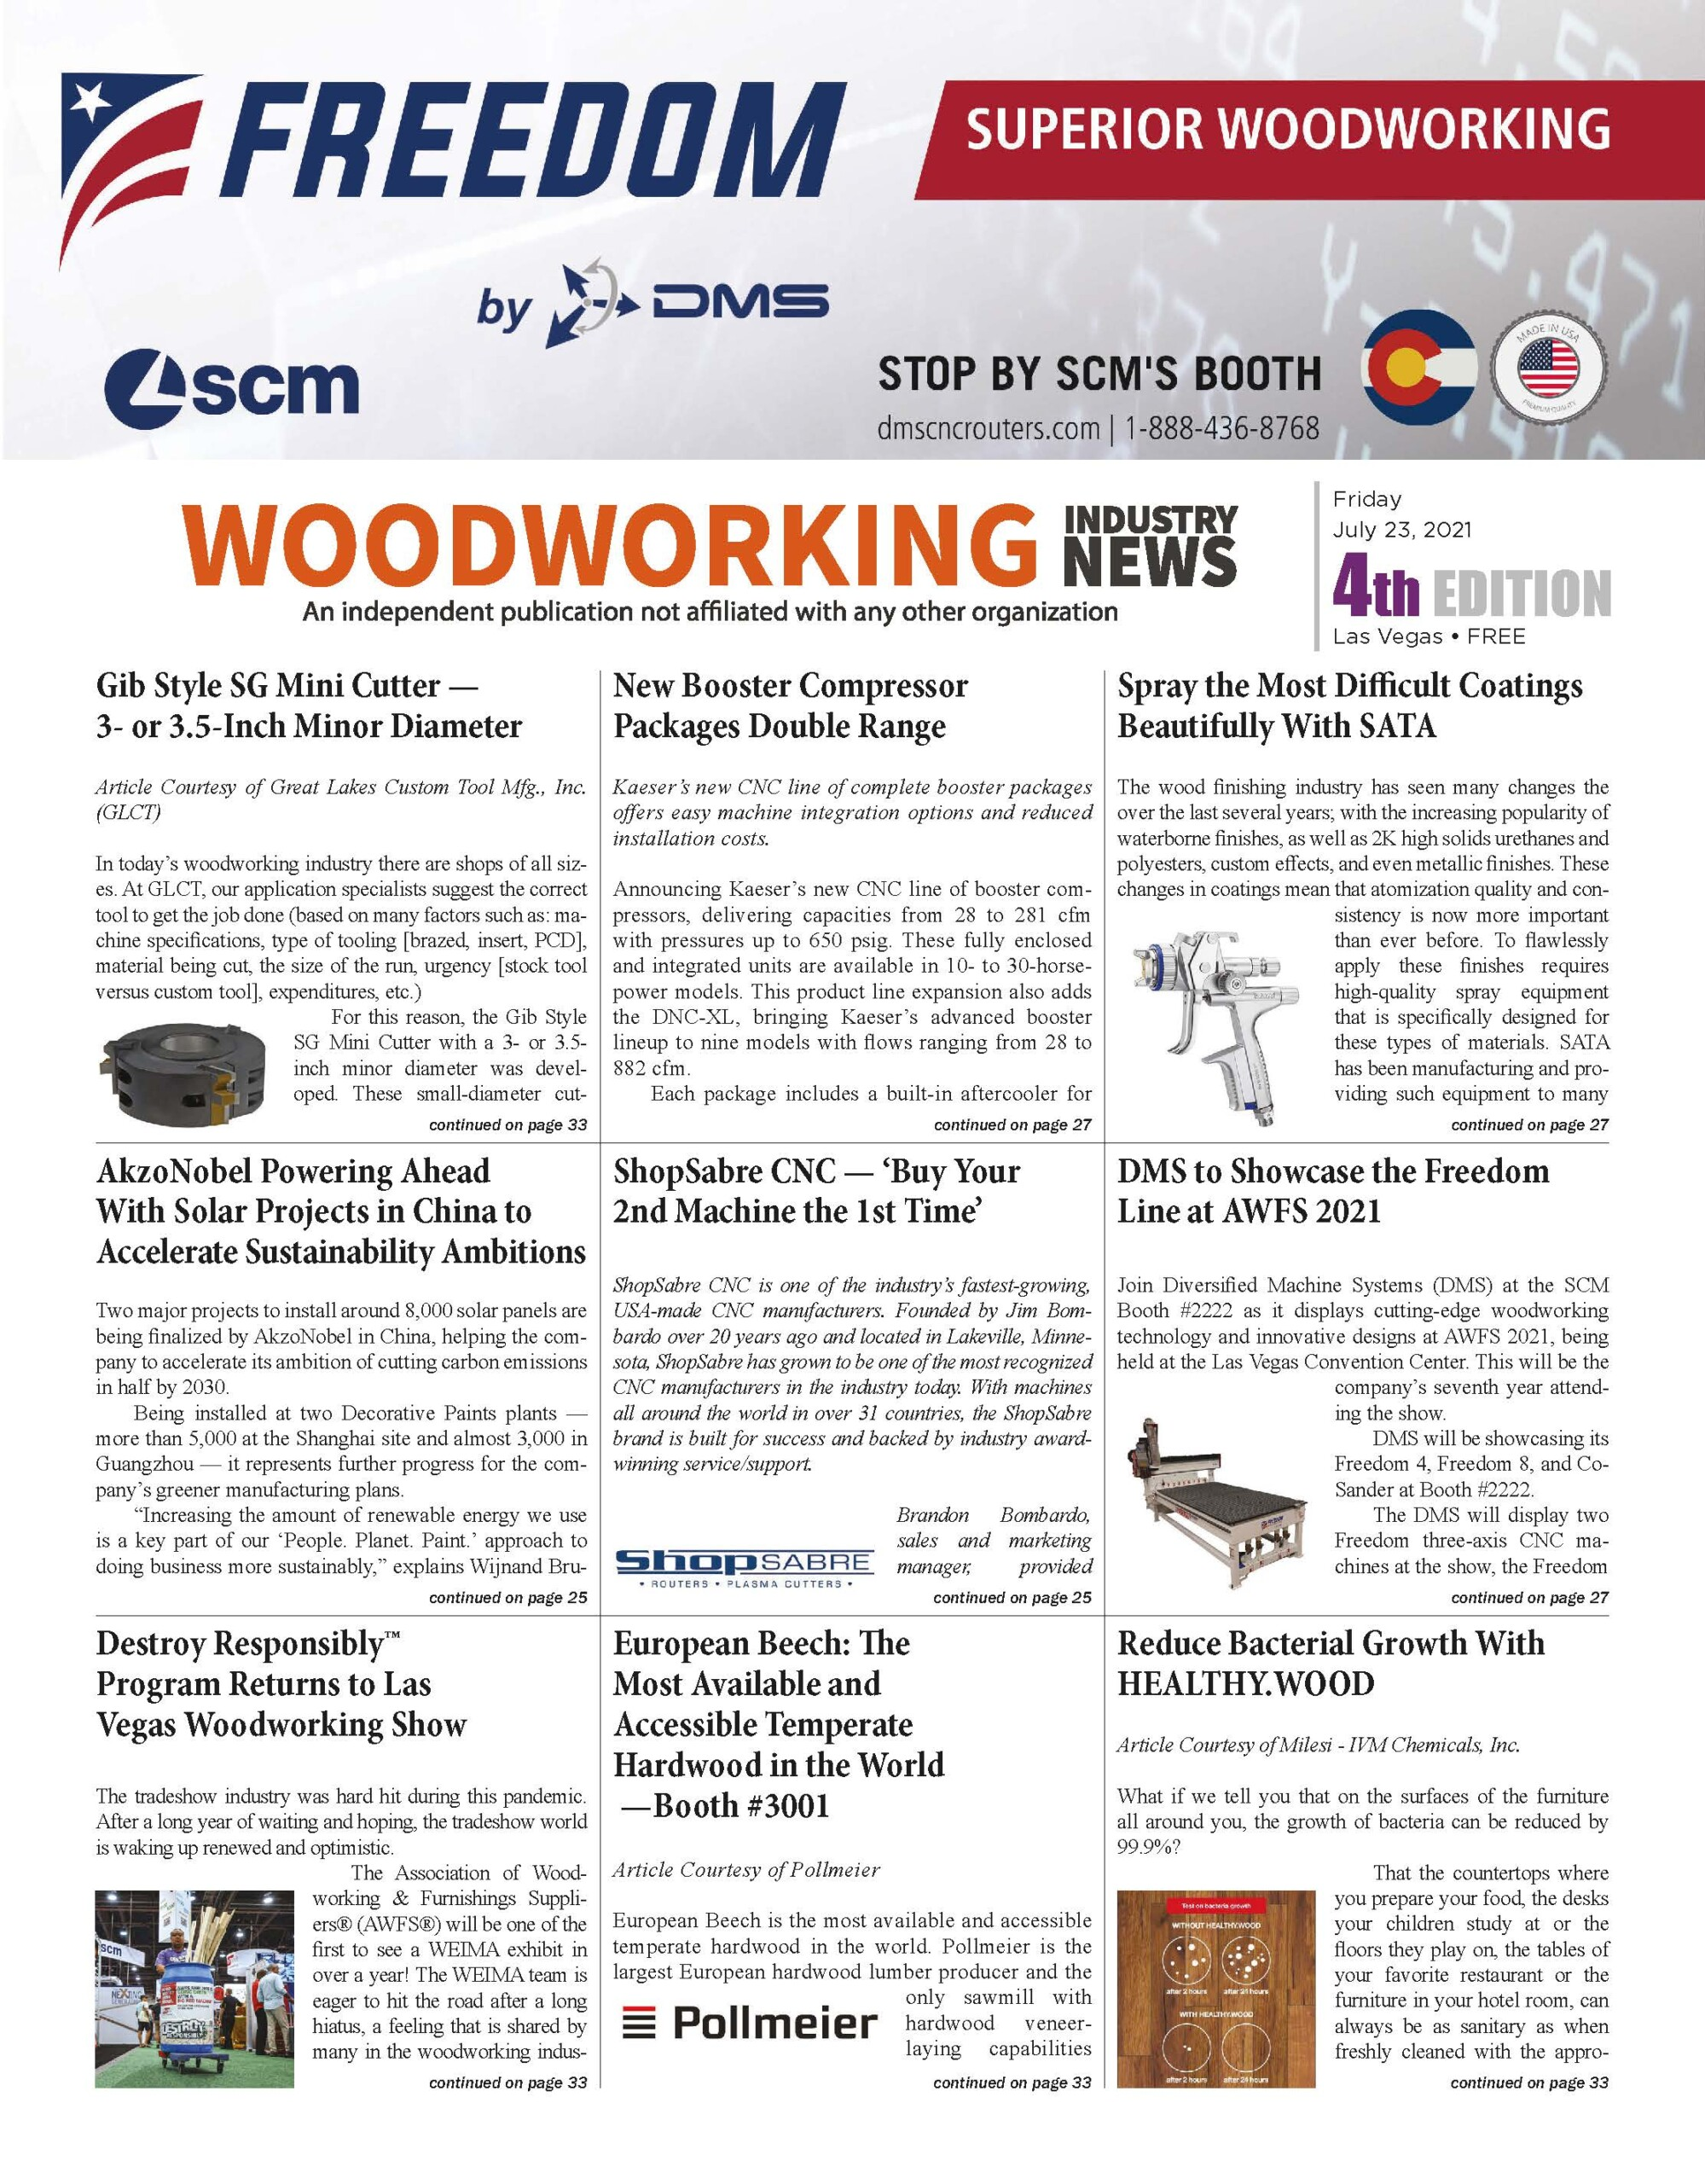 Woodworking Industry News